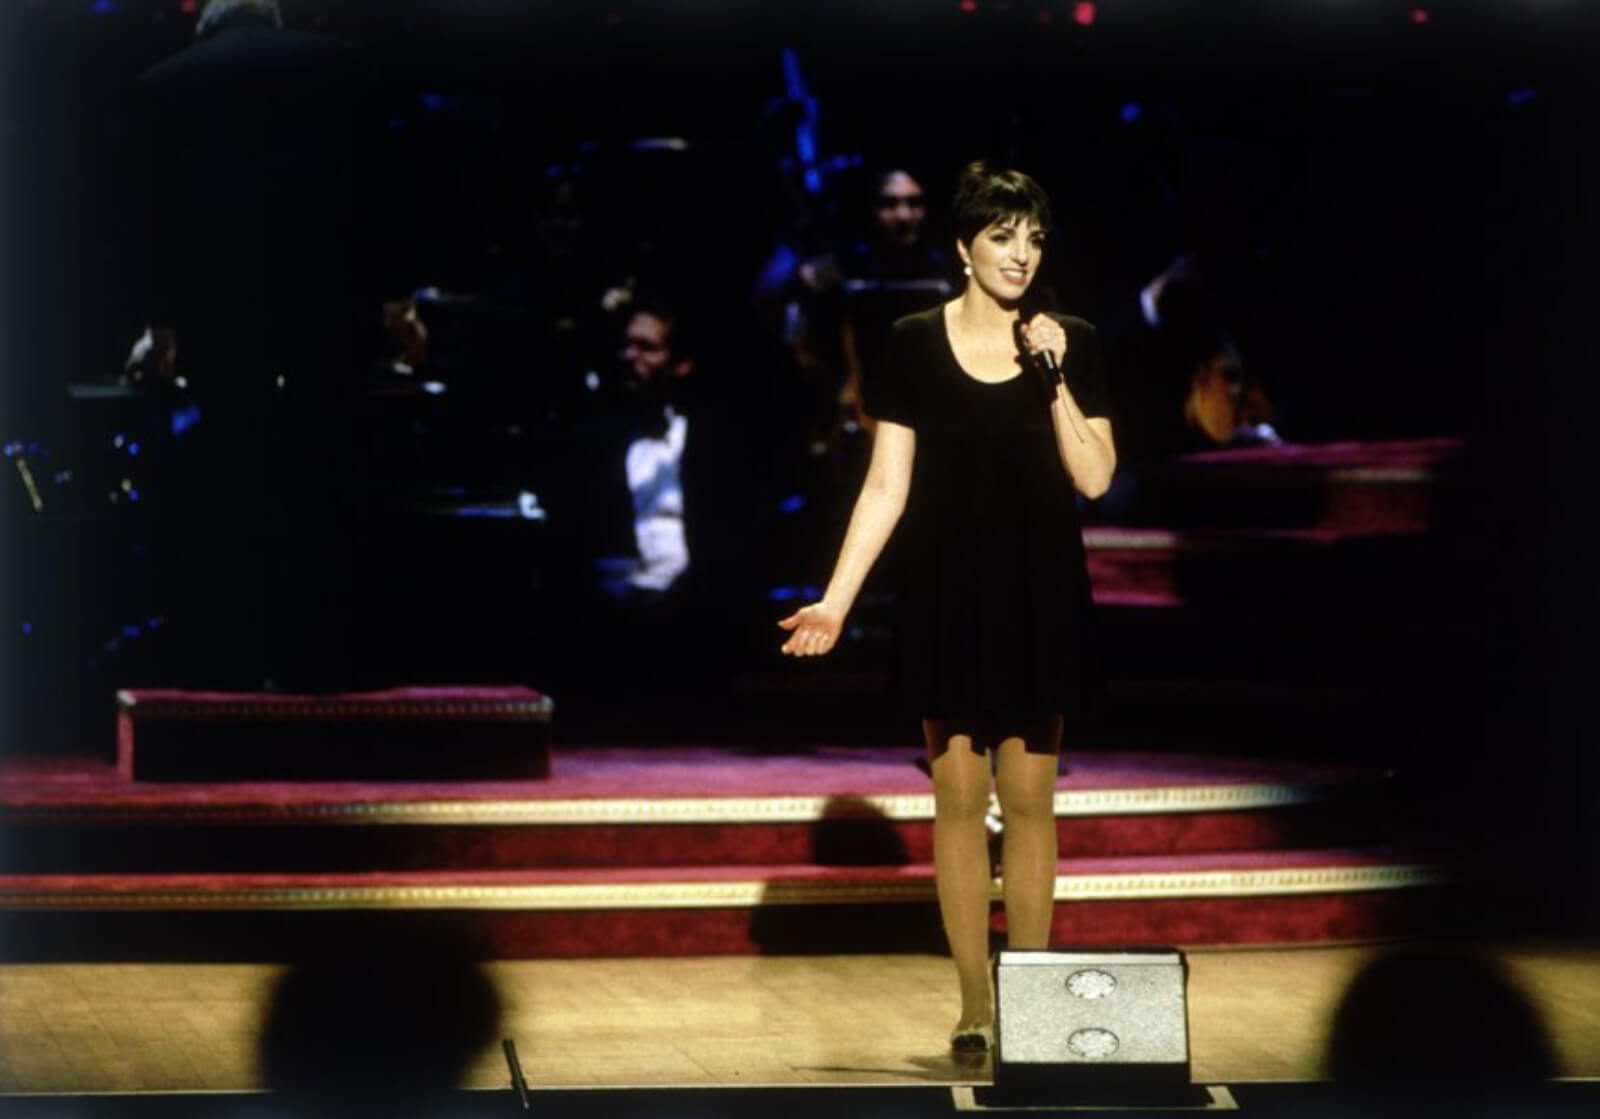 Liza Minnelli stands and sings. She is wearing a little black dress.